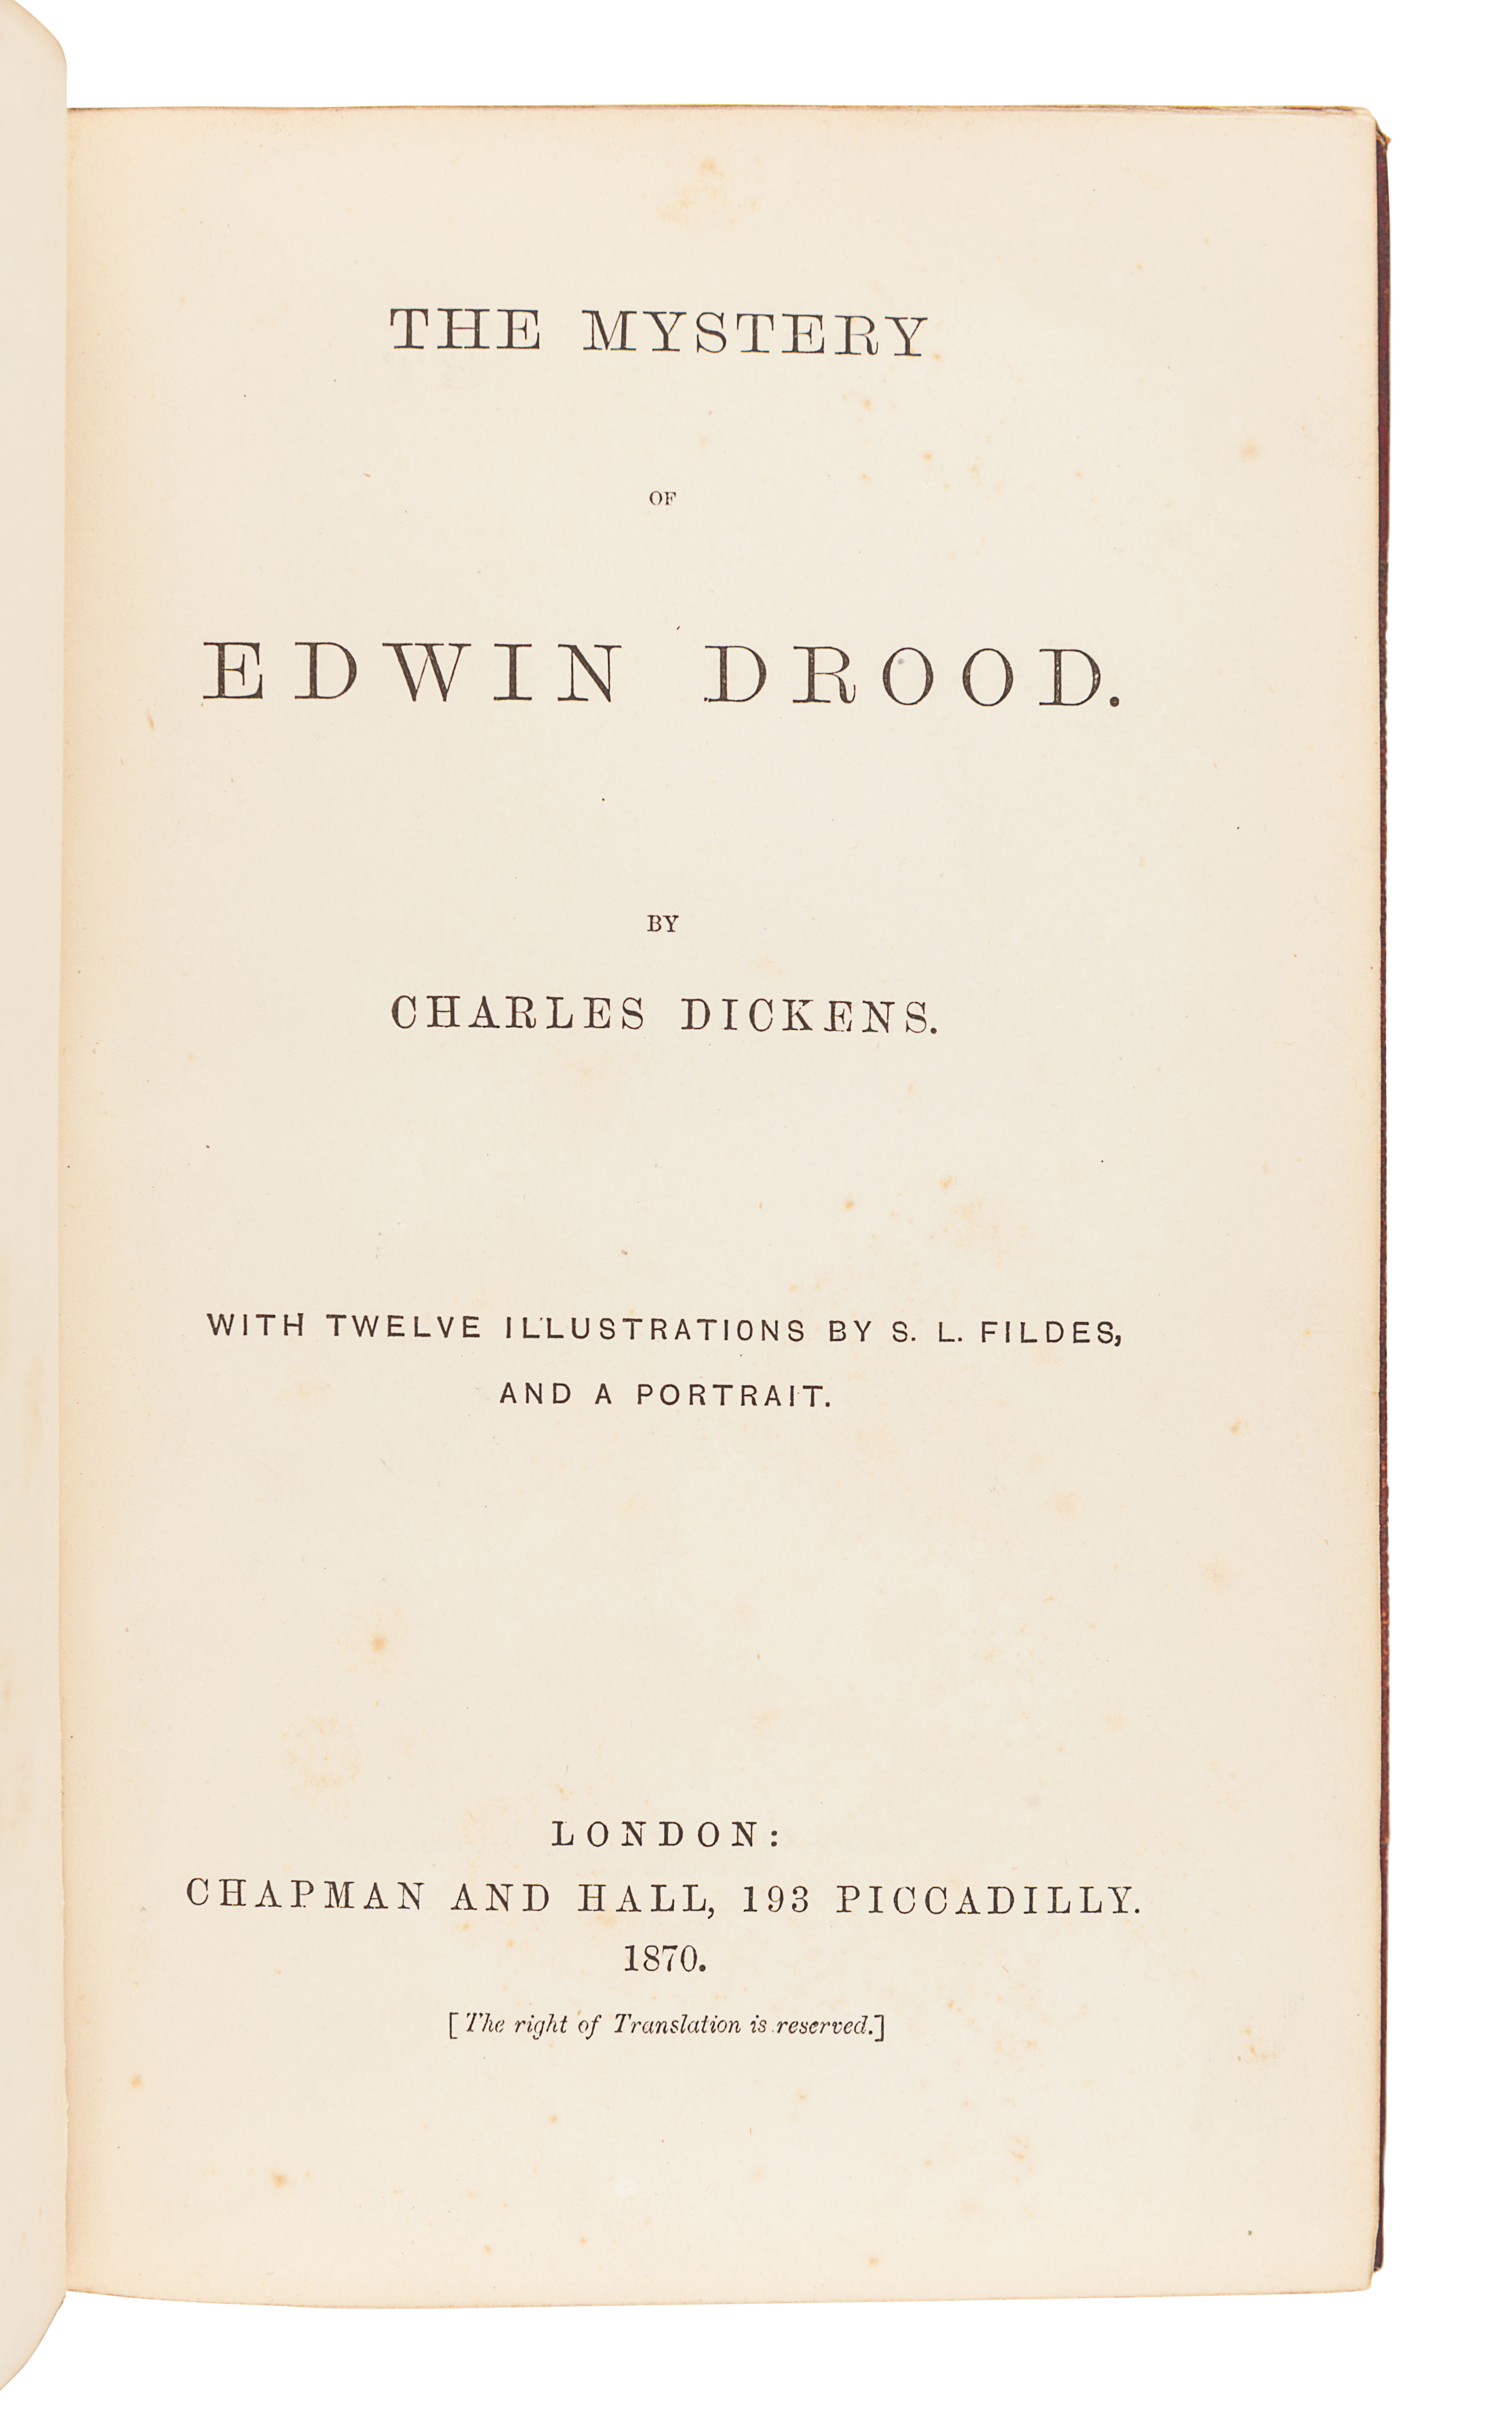 DICKENS, Charles (1812-1870). The Mystery of Edwin Drood. London: Chapman & Hall, 1870.